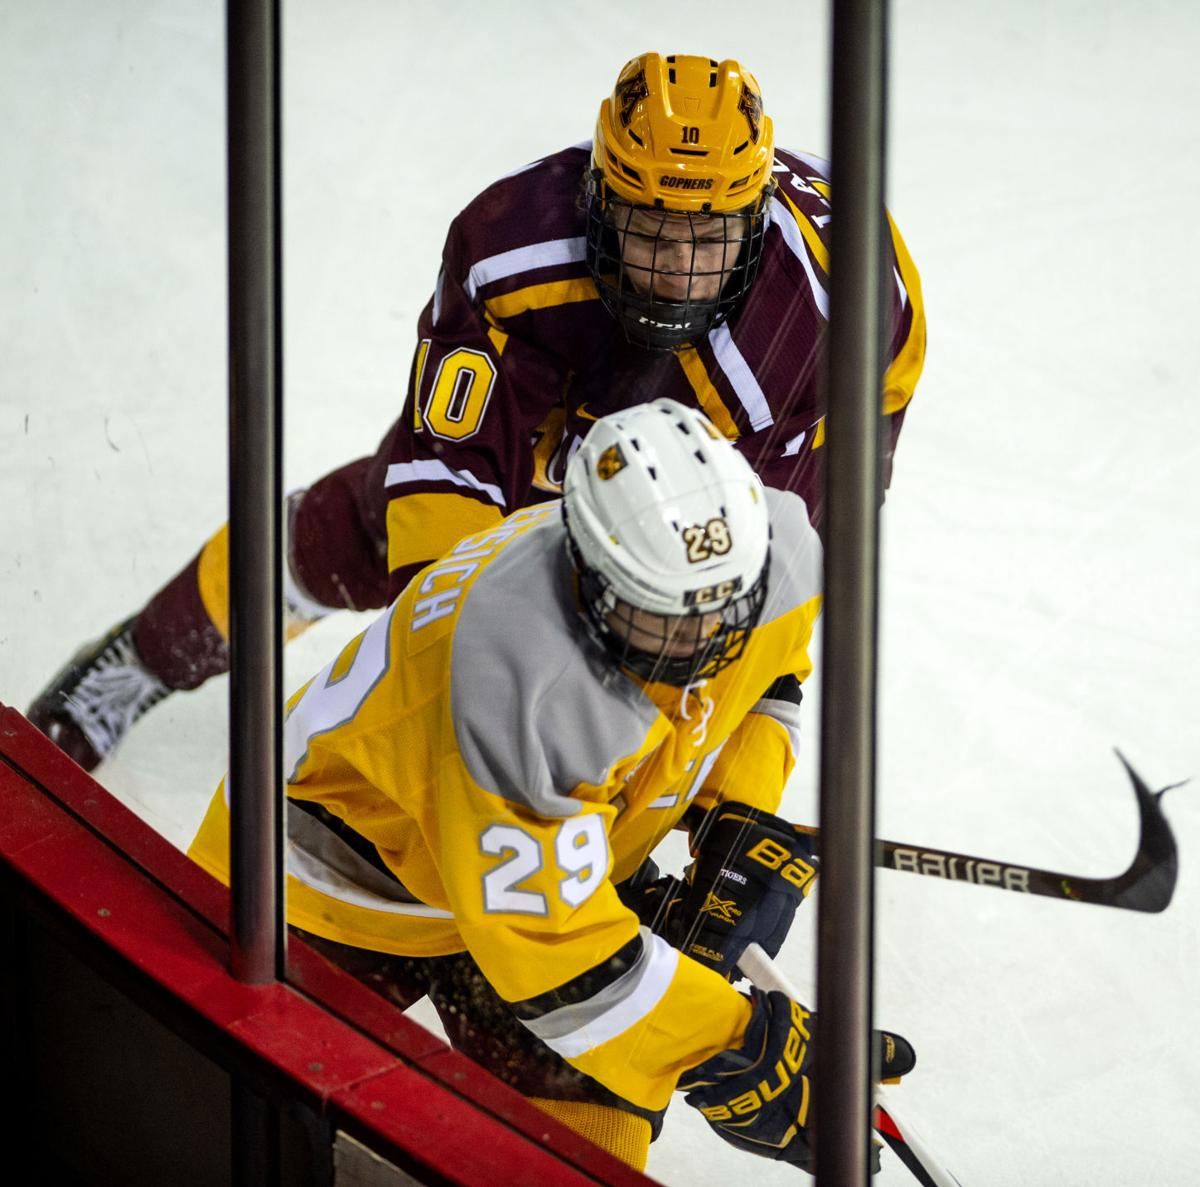 Colorado College Tigers defeat Minnesota Golden Gophers